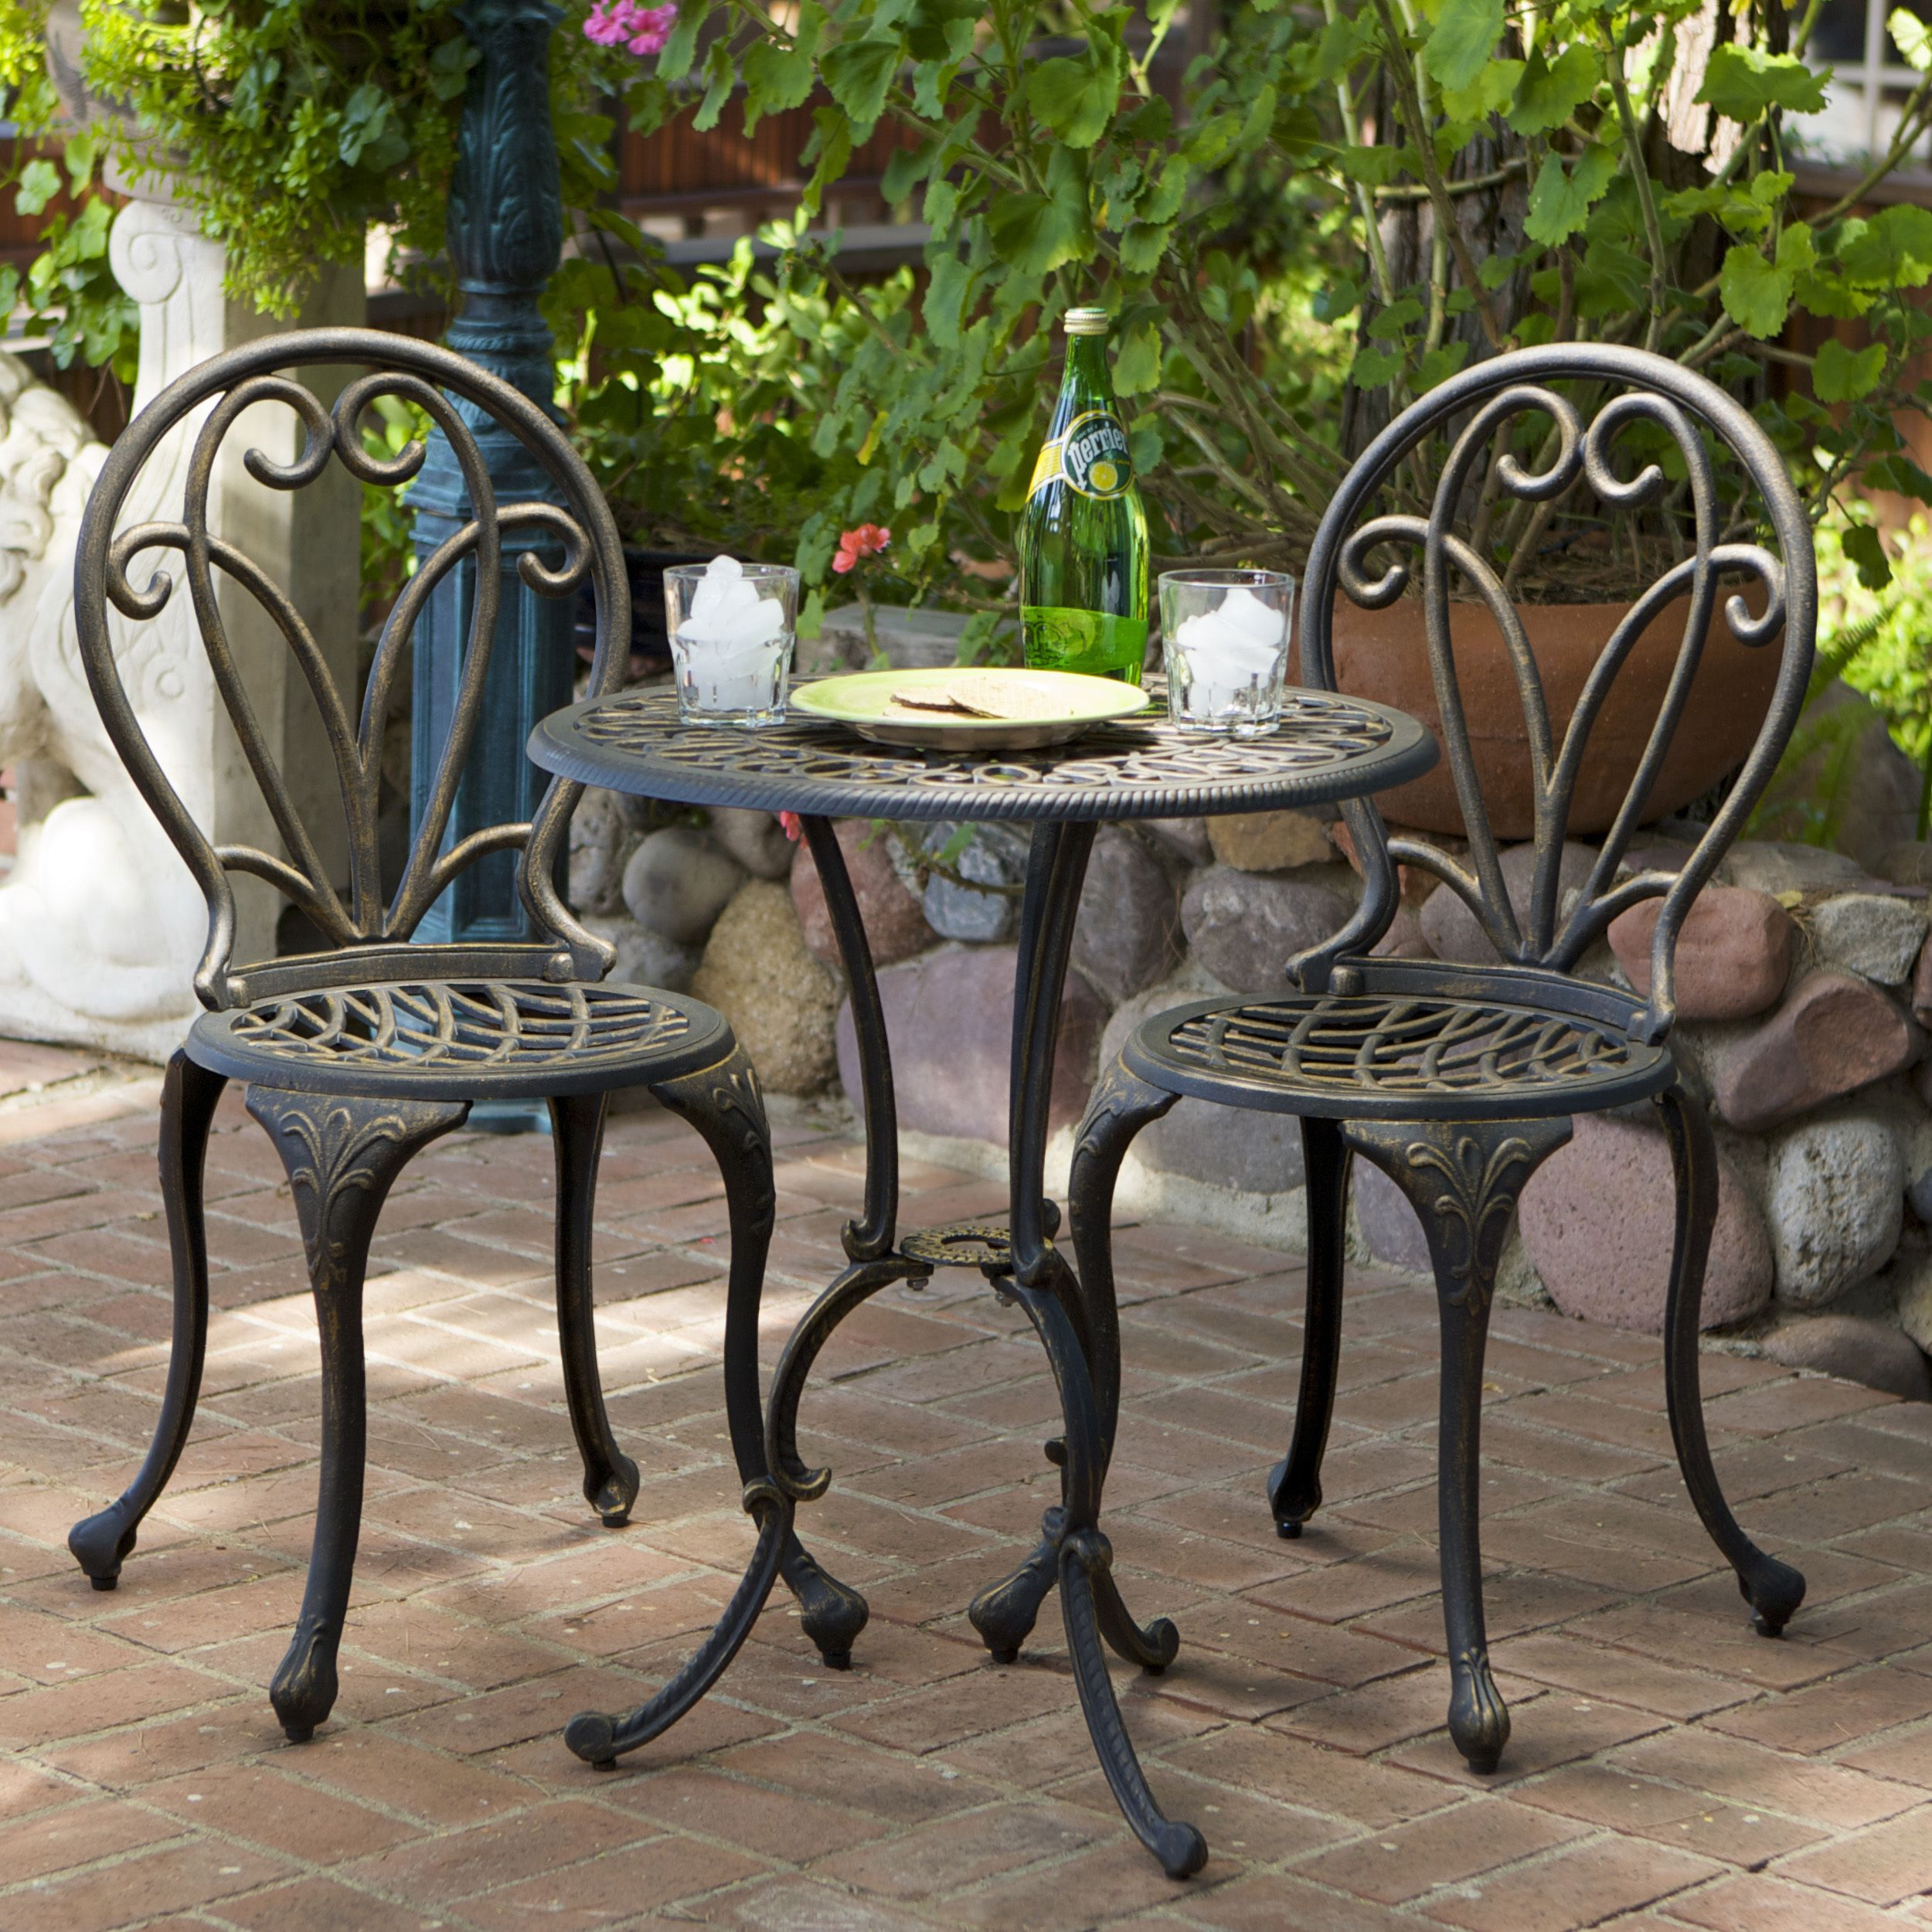 outdoor bistro table and chairs set office chair with armrest this french style will lend classy to your patio the is constructed of cast aluminum in dark gold color iron legs